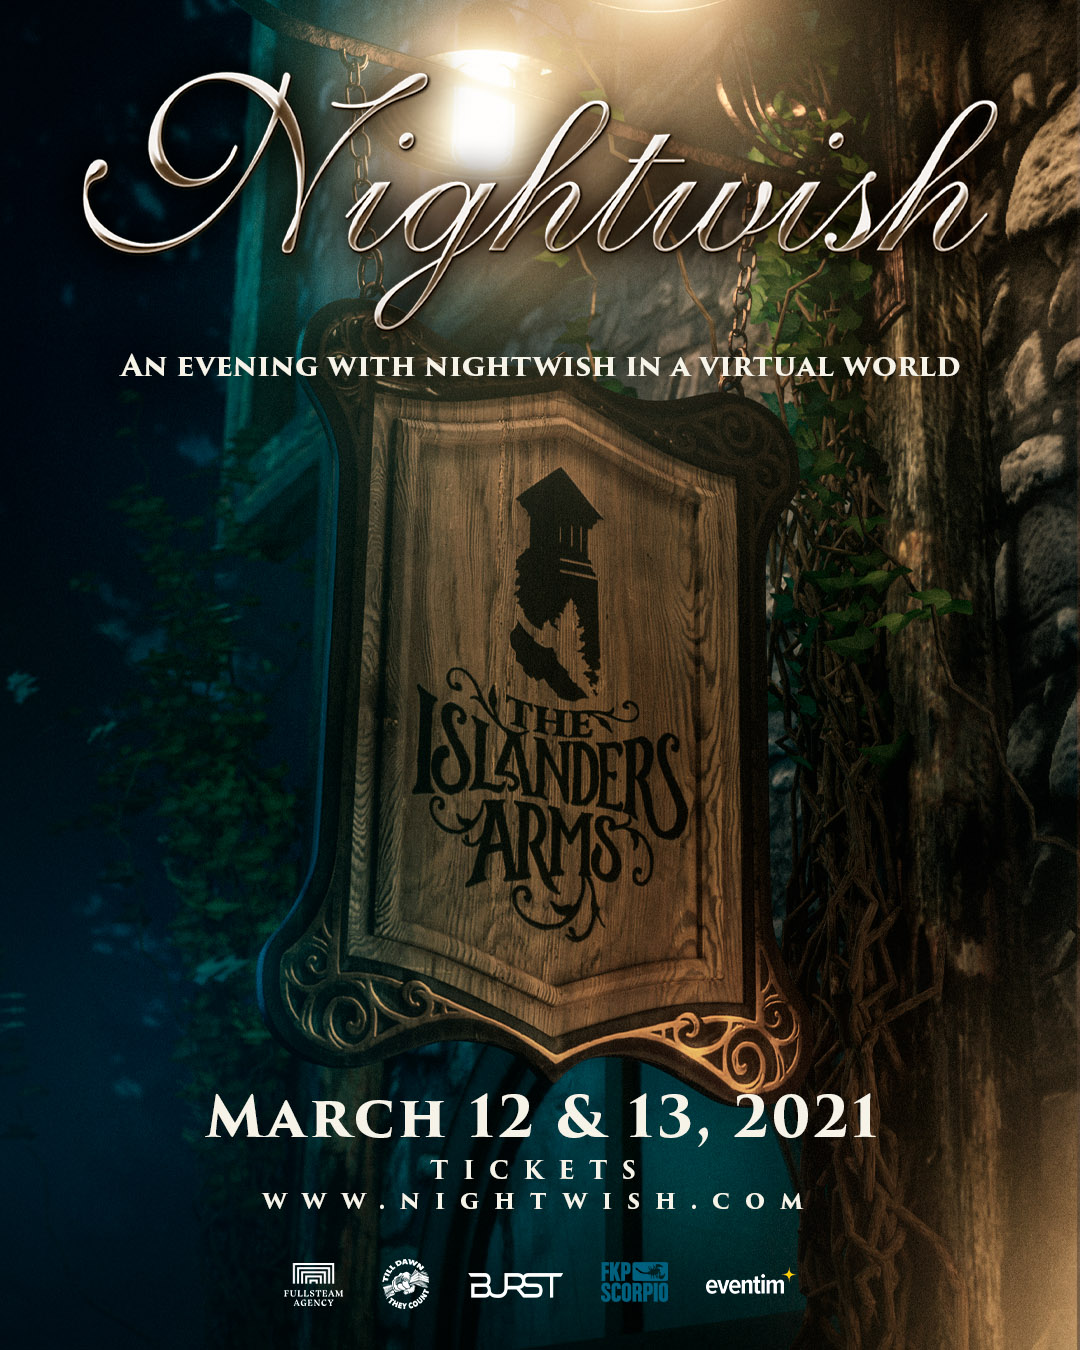 An Evening With Nightwish In A Virtual World Social Media Poster